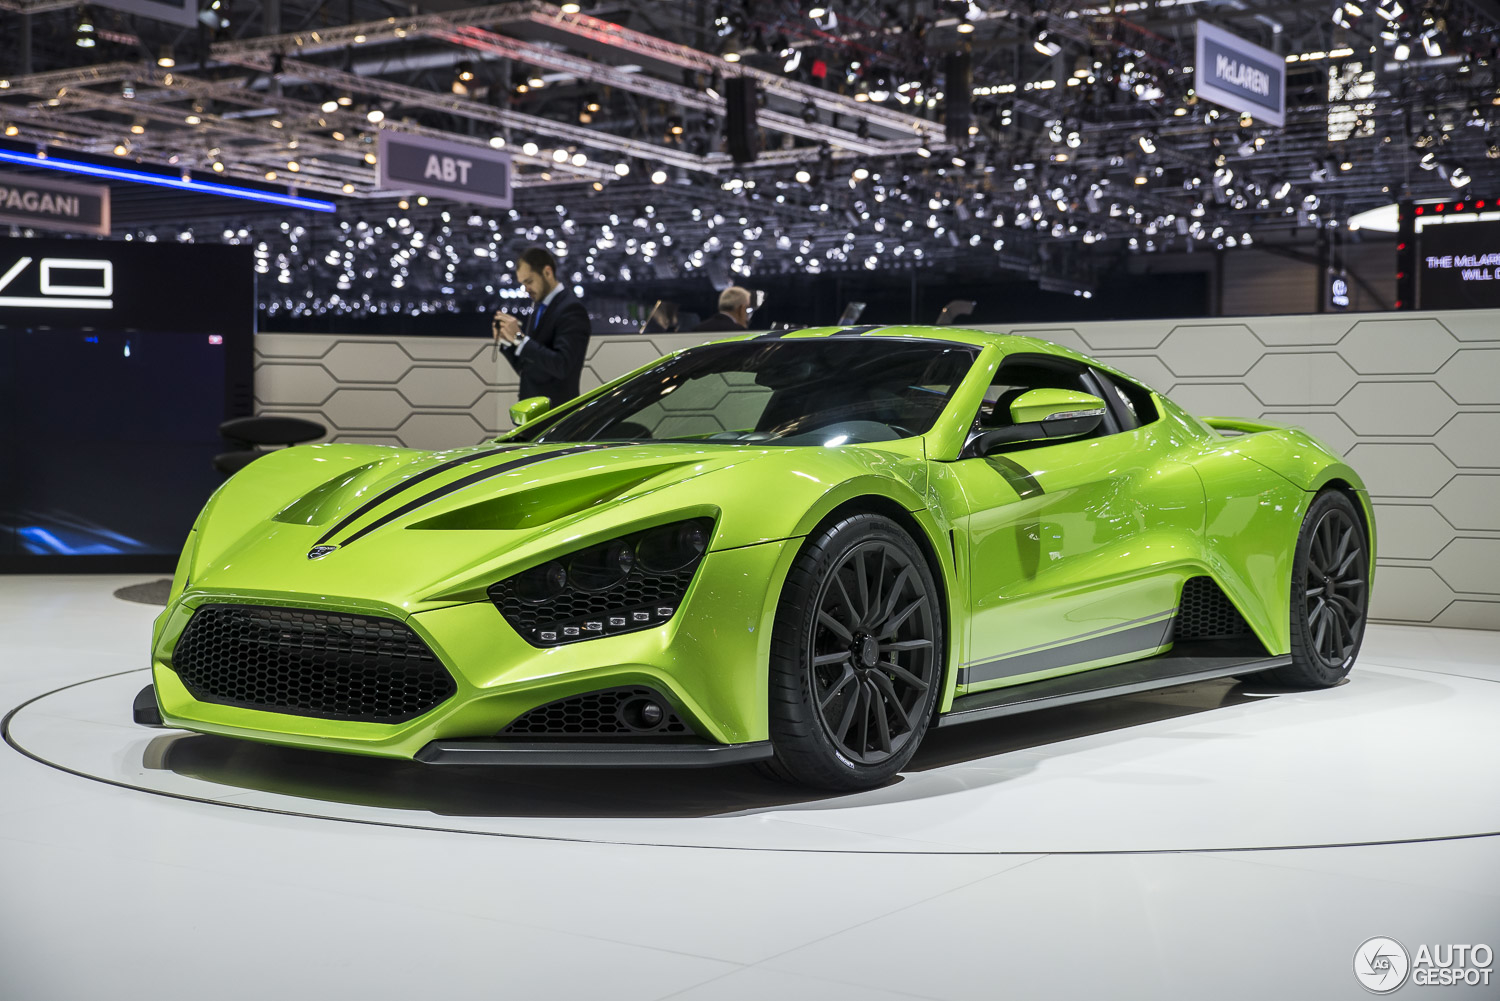 Geneva 2015: upgrades for the Zenvo ST1